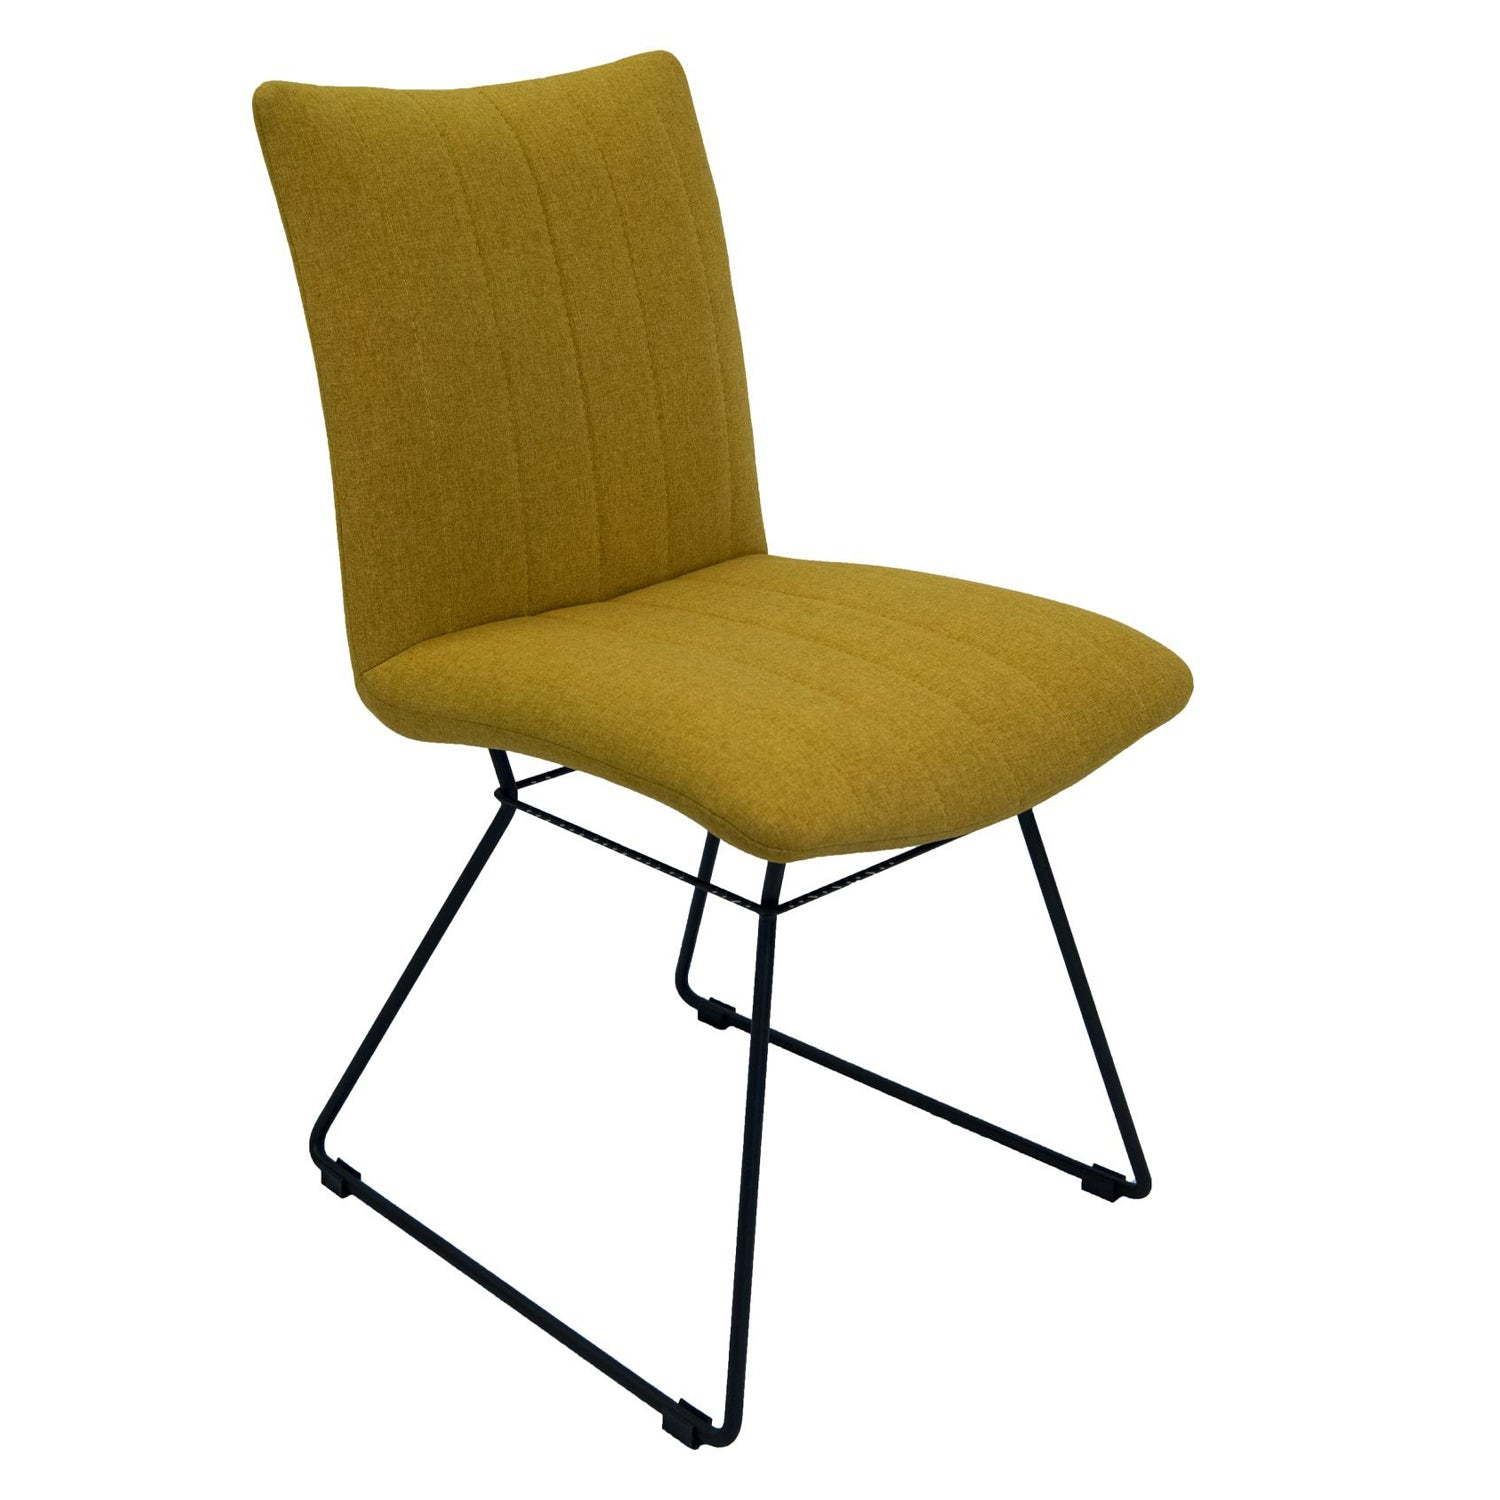 Wade Dining Chair - Saffron